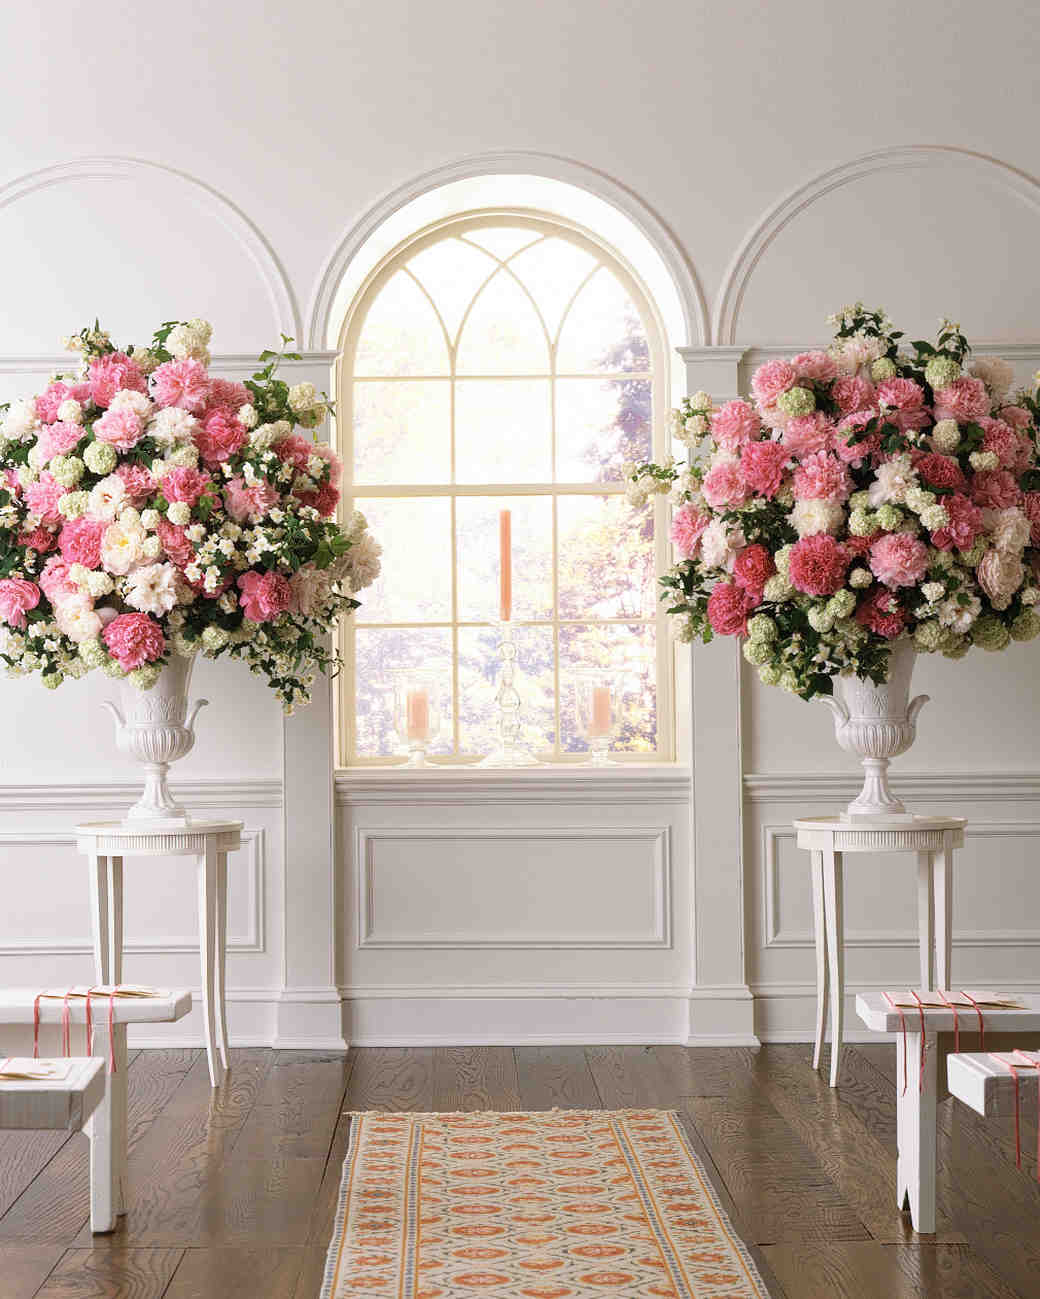 Wedding Church Altar Arrangements: Peony-Inspired Wedding Ideas